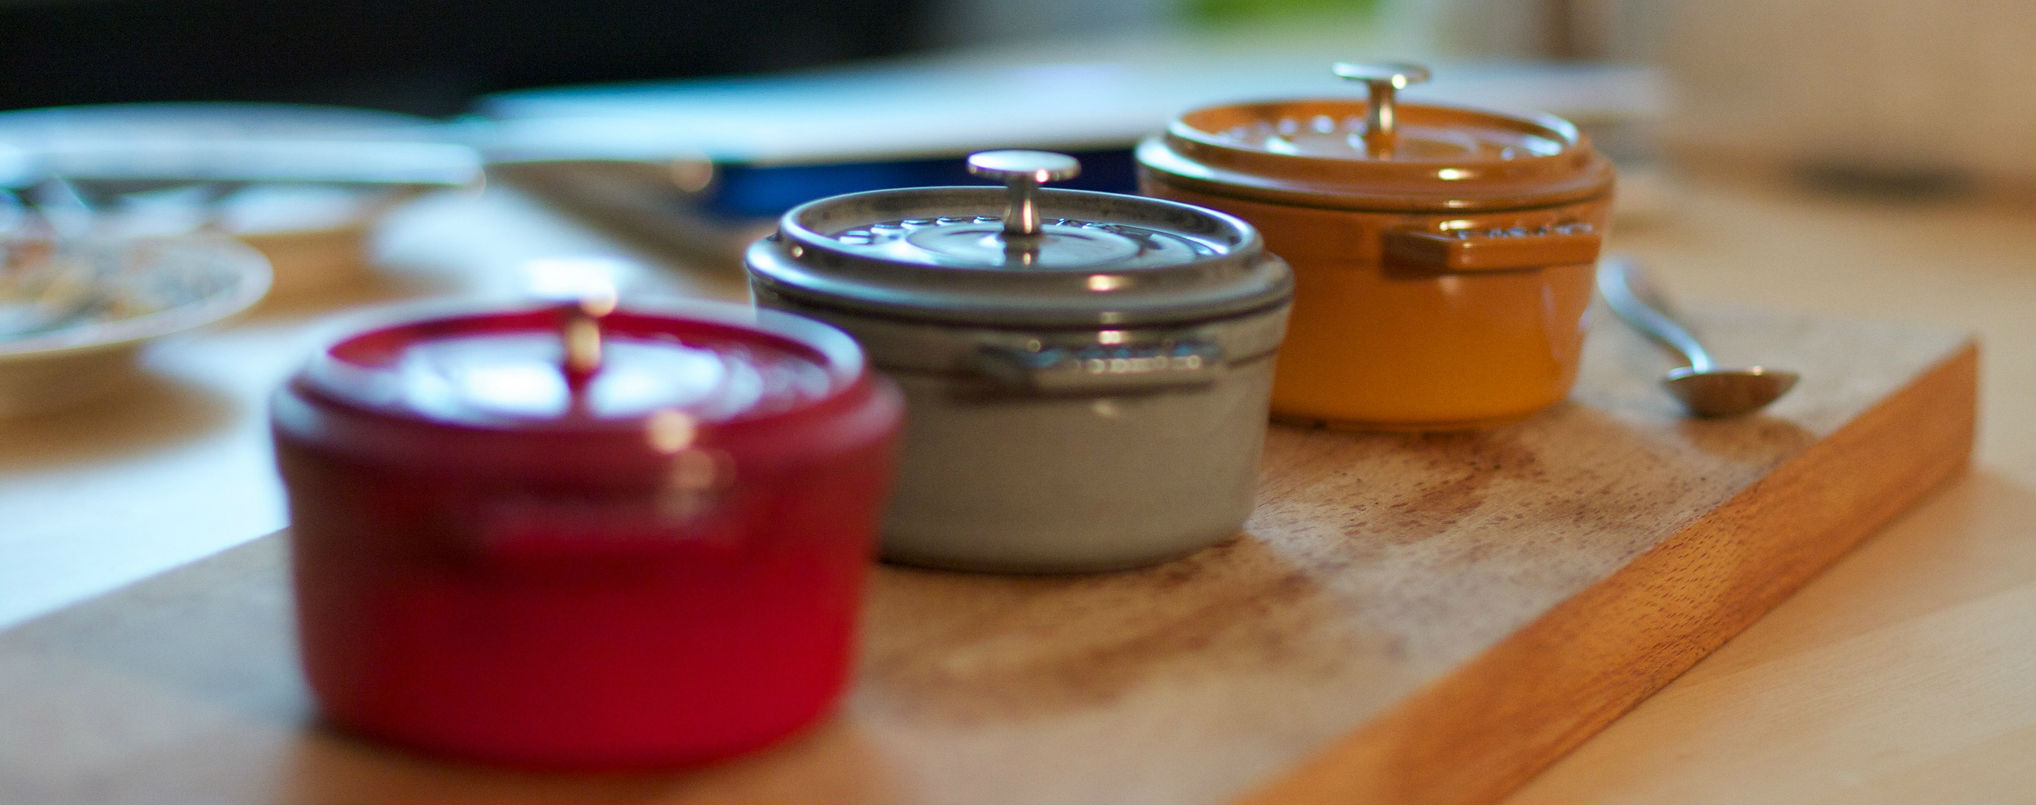 Three small enameled Dutch ovens on a chopping board